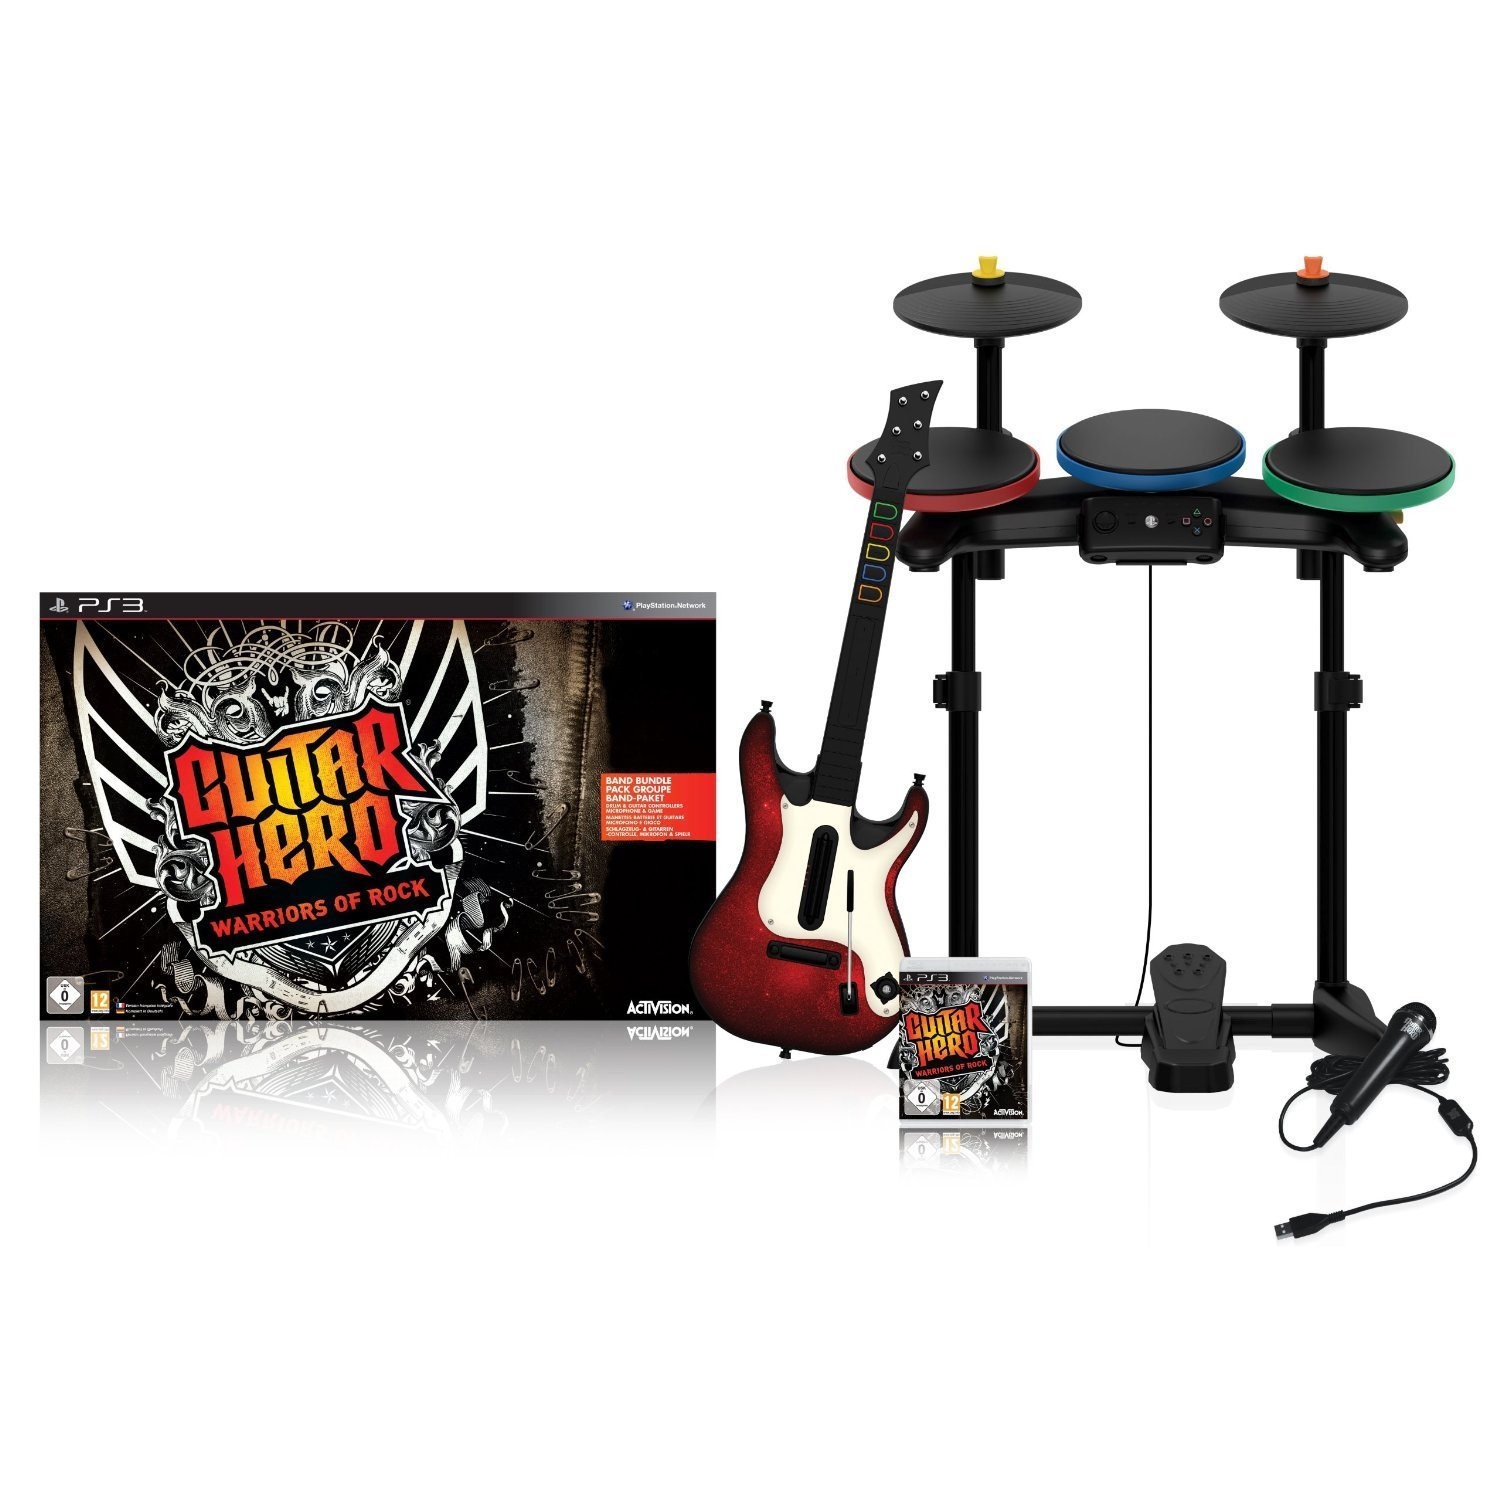 playstation 3 ps3 guitar hero warriors of rock band. Black Bedroom Furniture Sets. Home Design Ideas